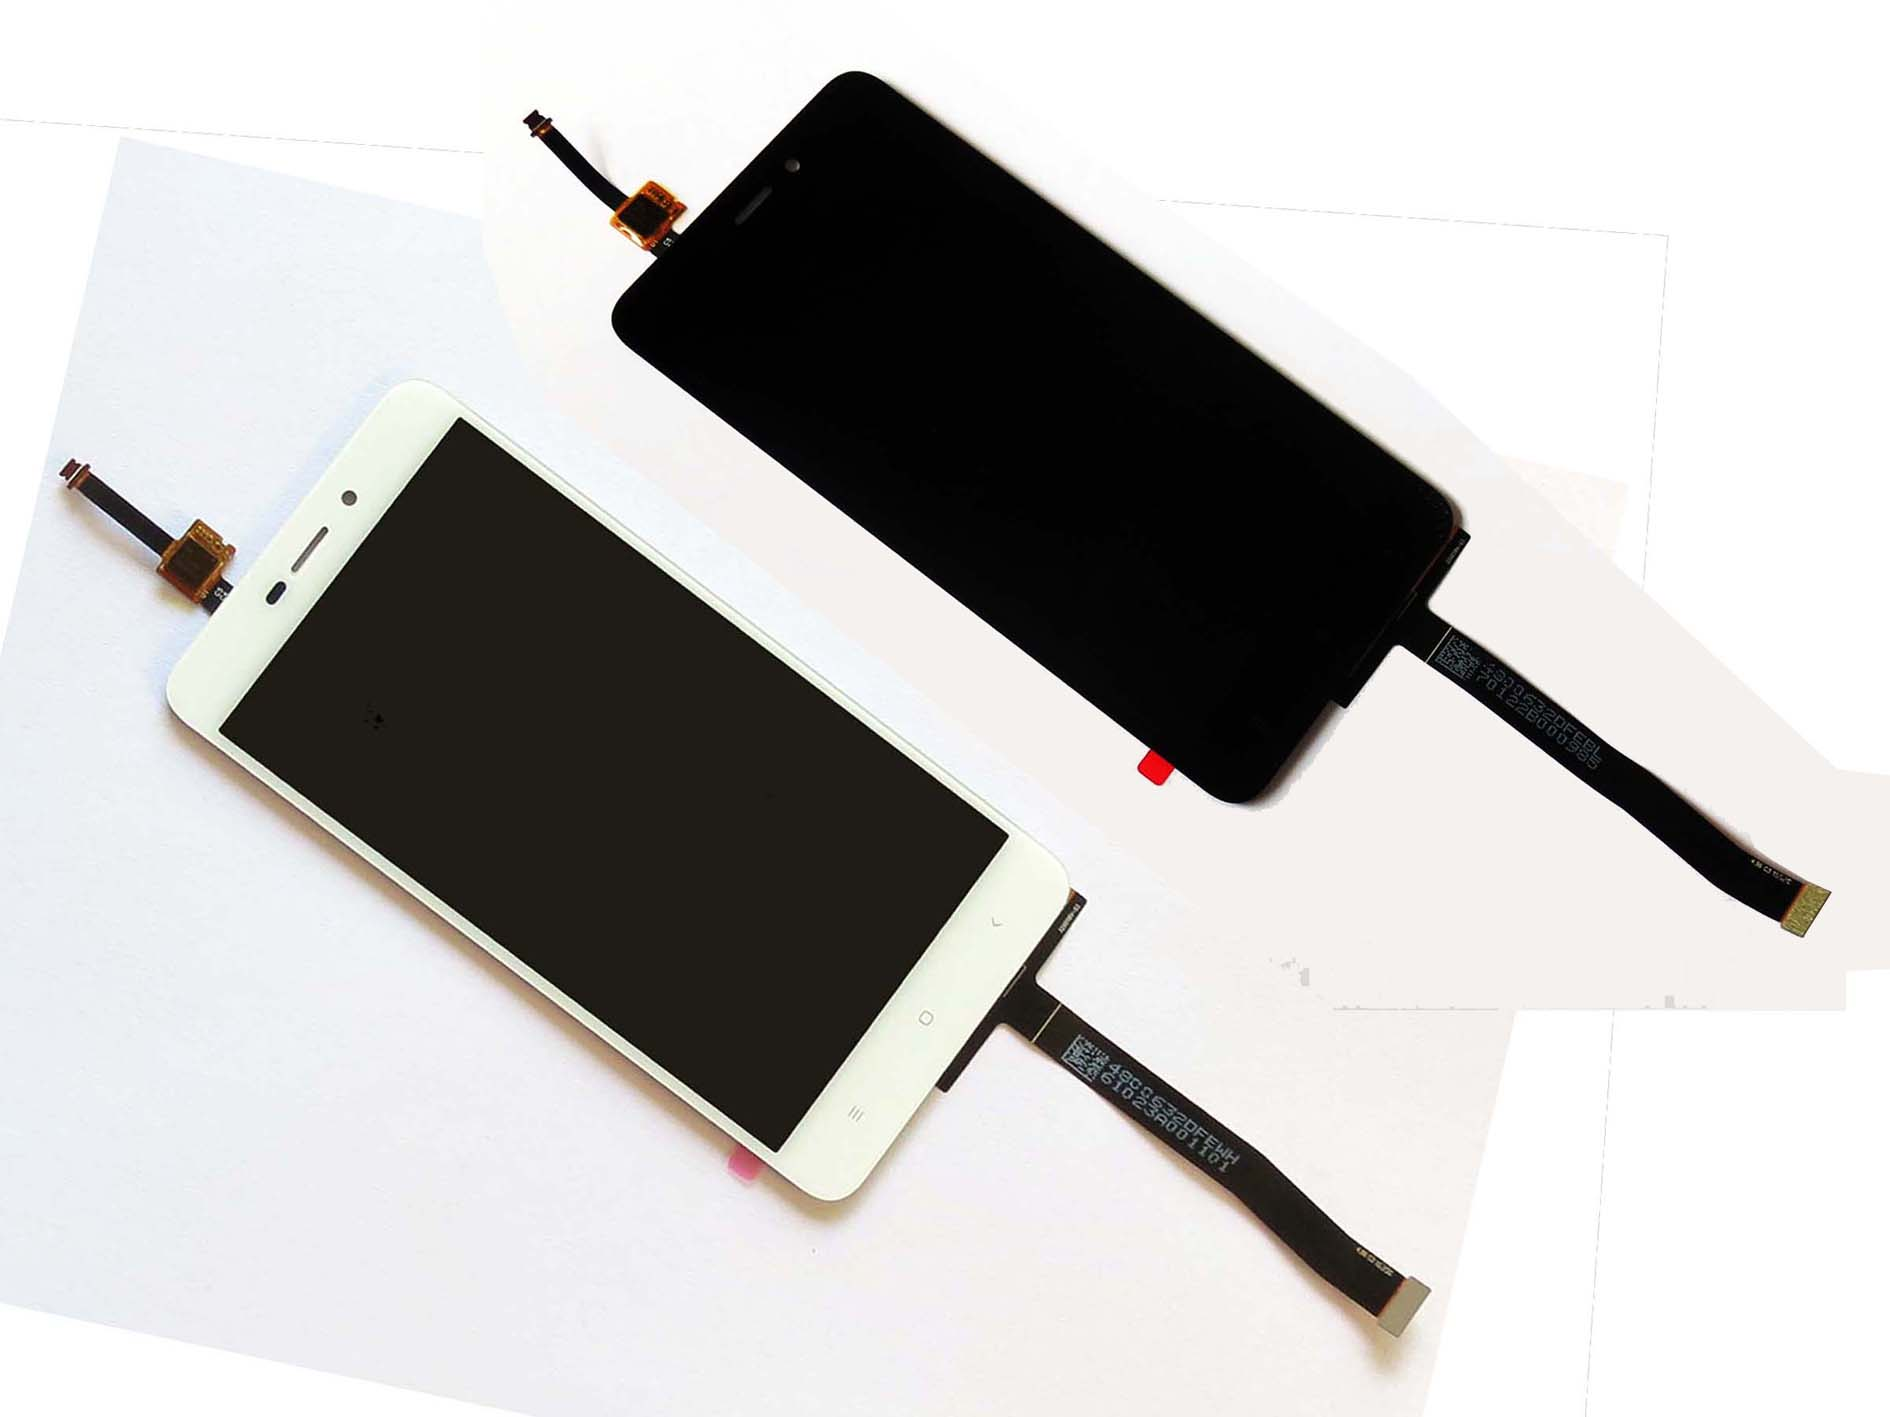 Original LCD display Touch Screen and Digitizer Assembly for Redmi 4A – Black & White